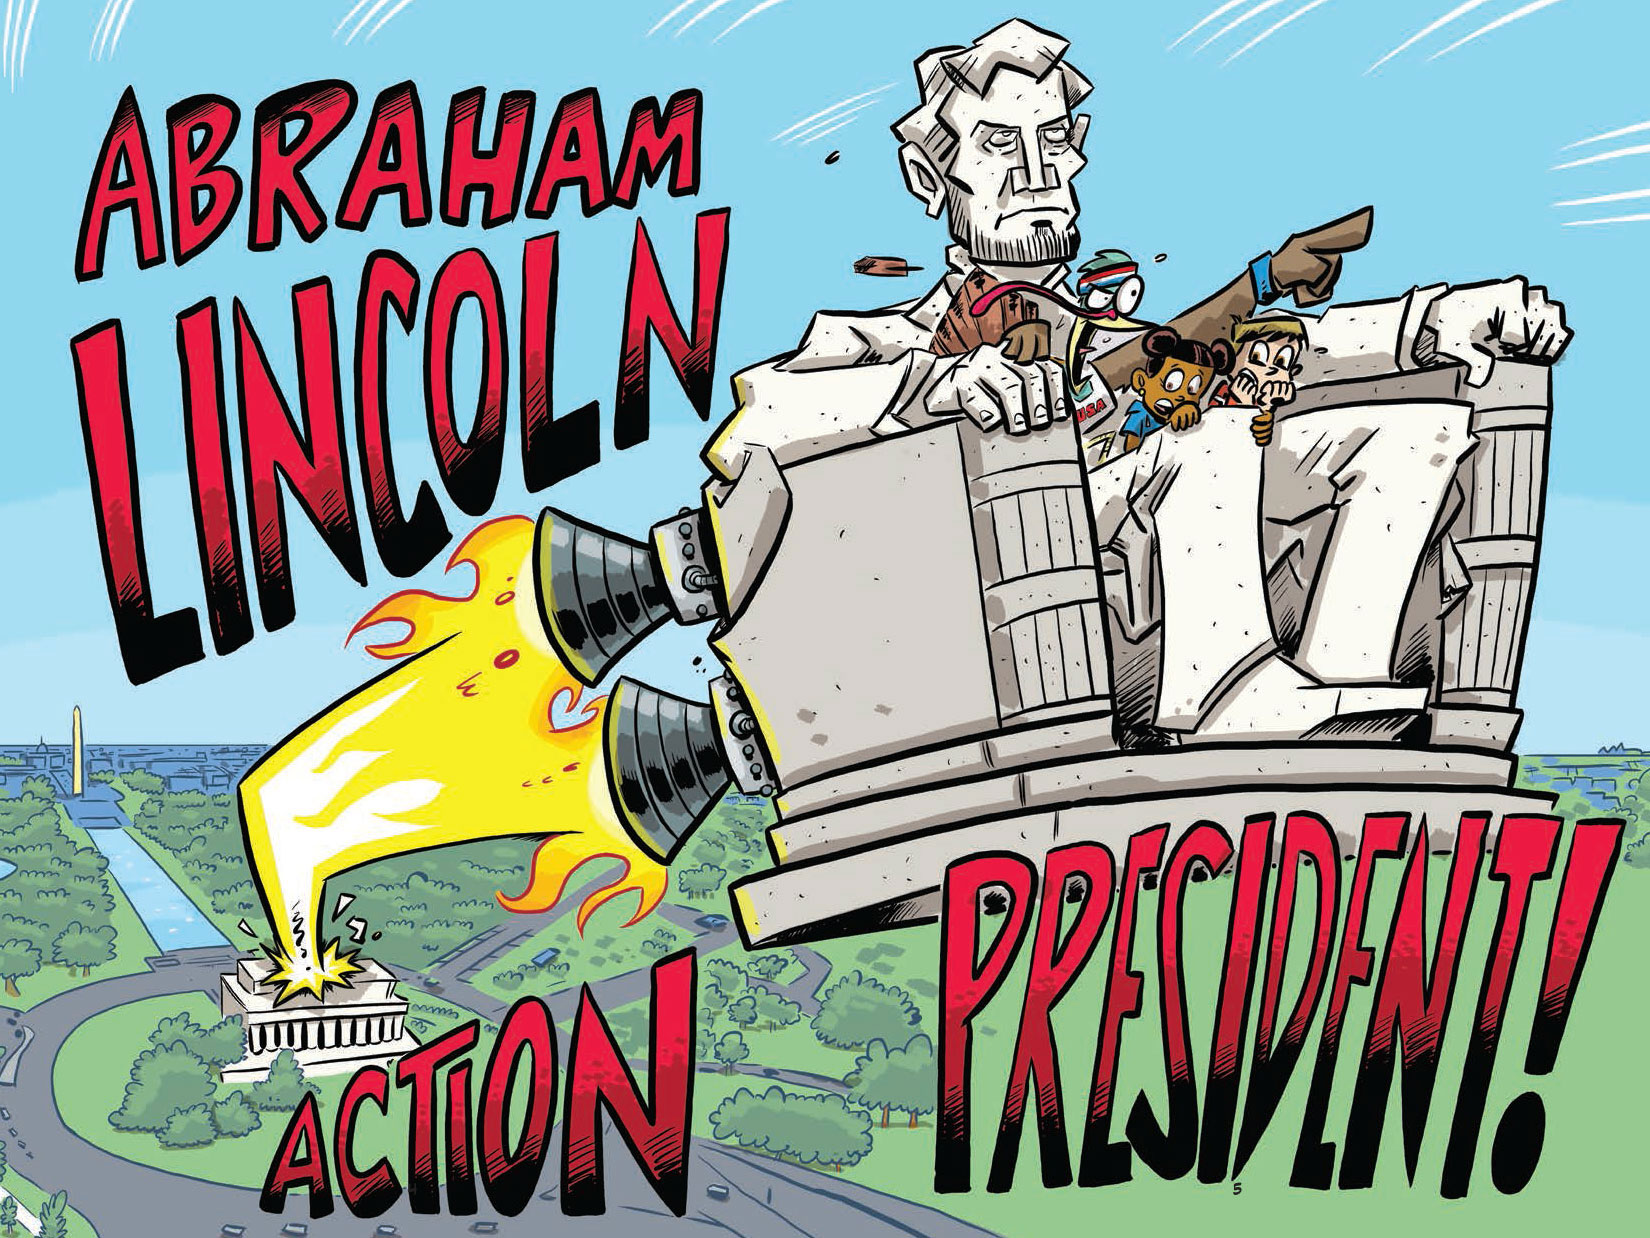 Action-Presidents-v2-Abraham-Lincoln-6